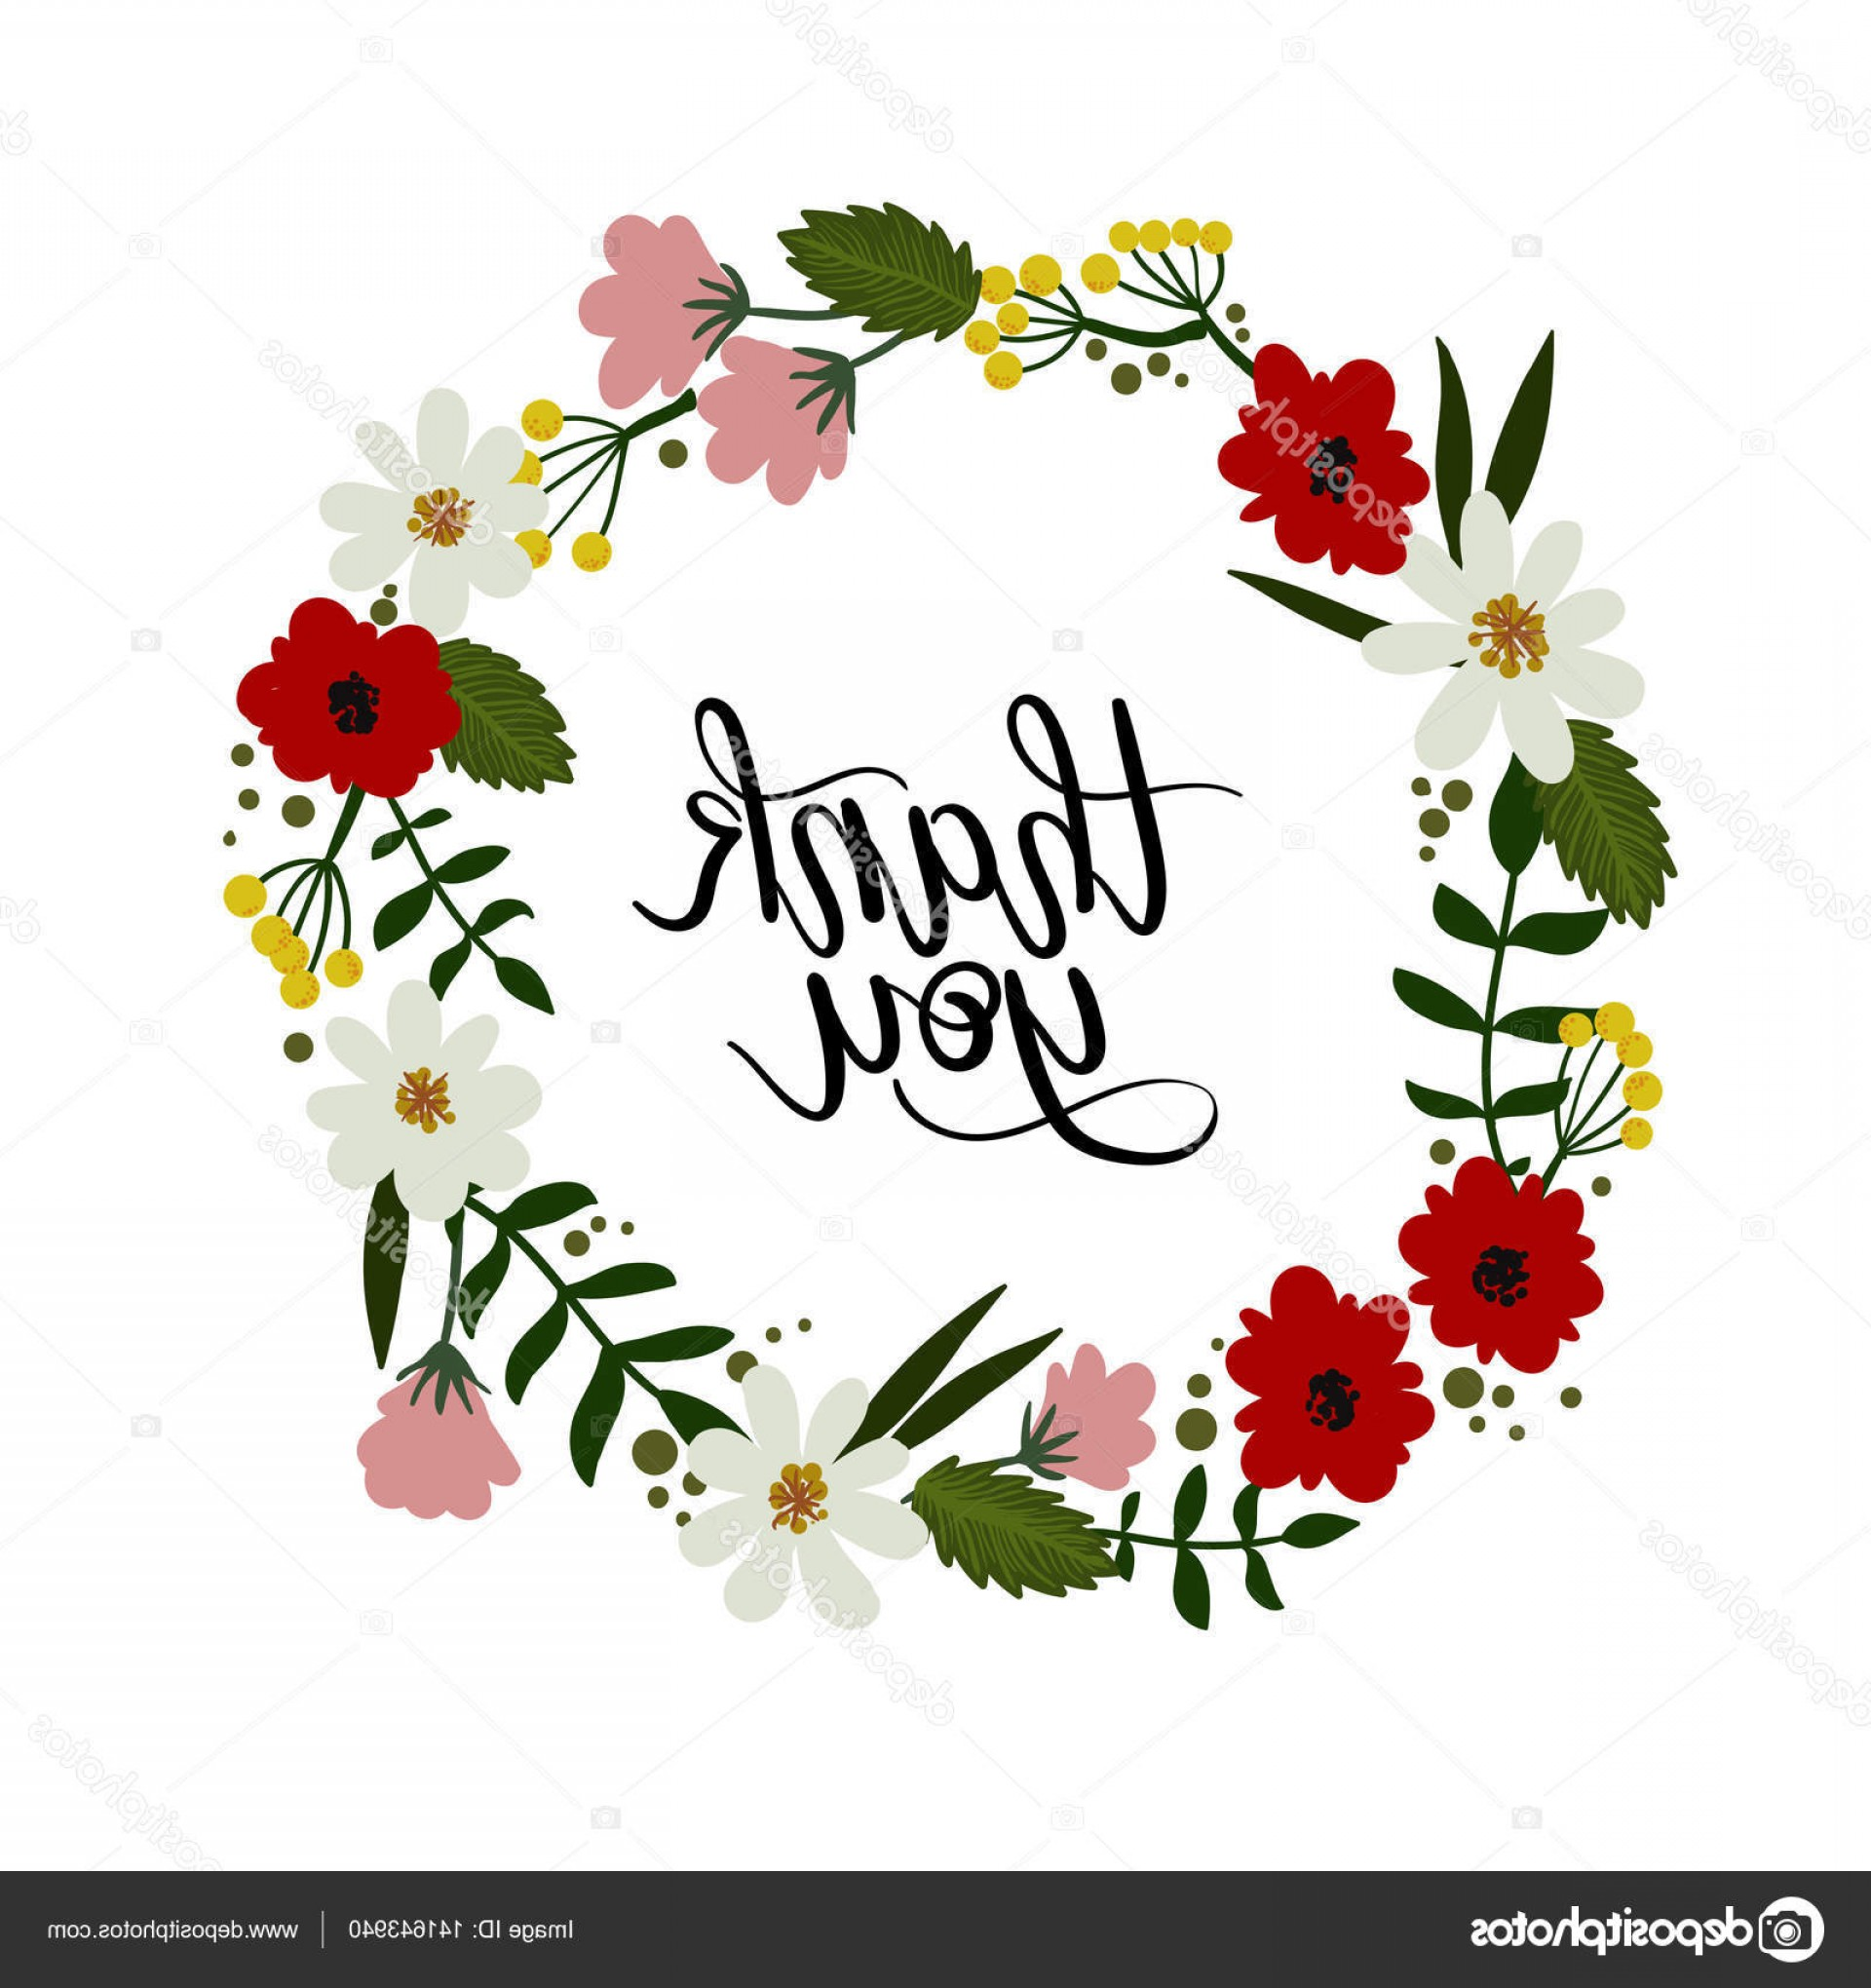 Floral Vector Calligraphy: Stock Illustration Thank You Hand Lettering Card